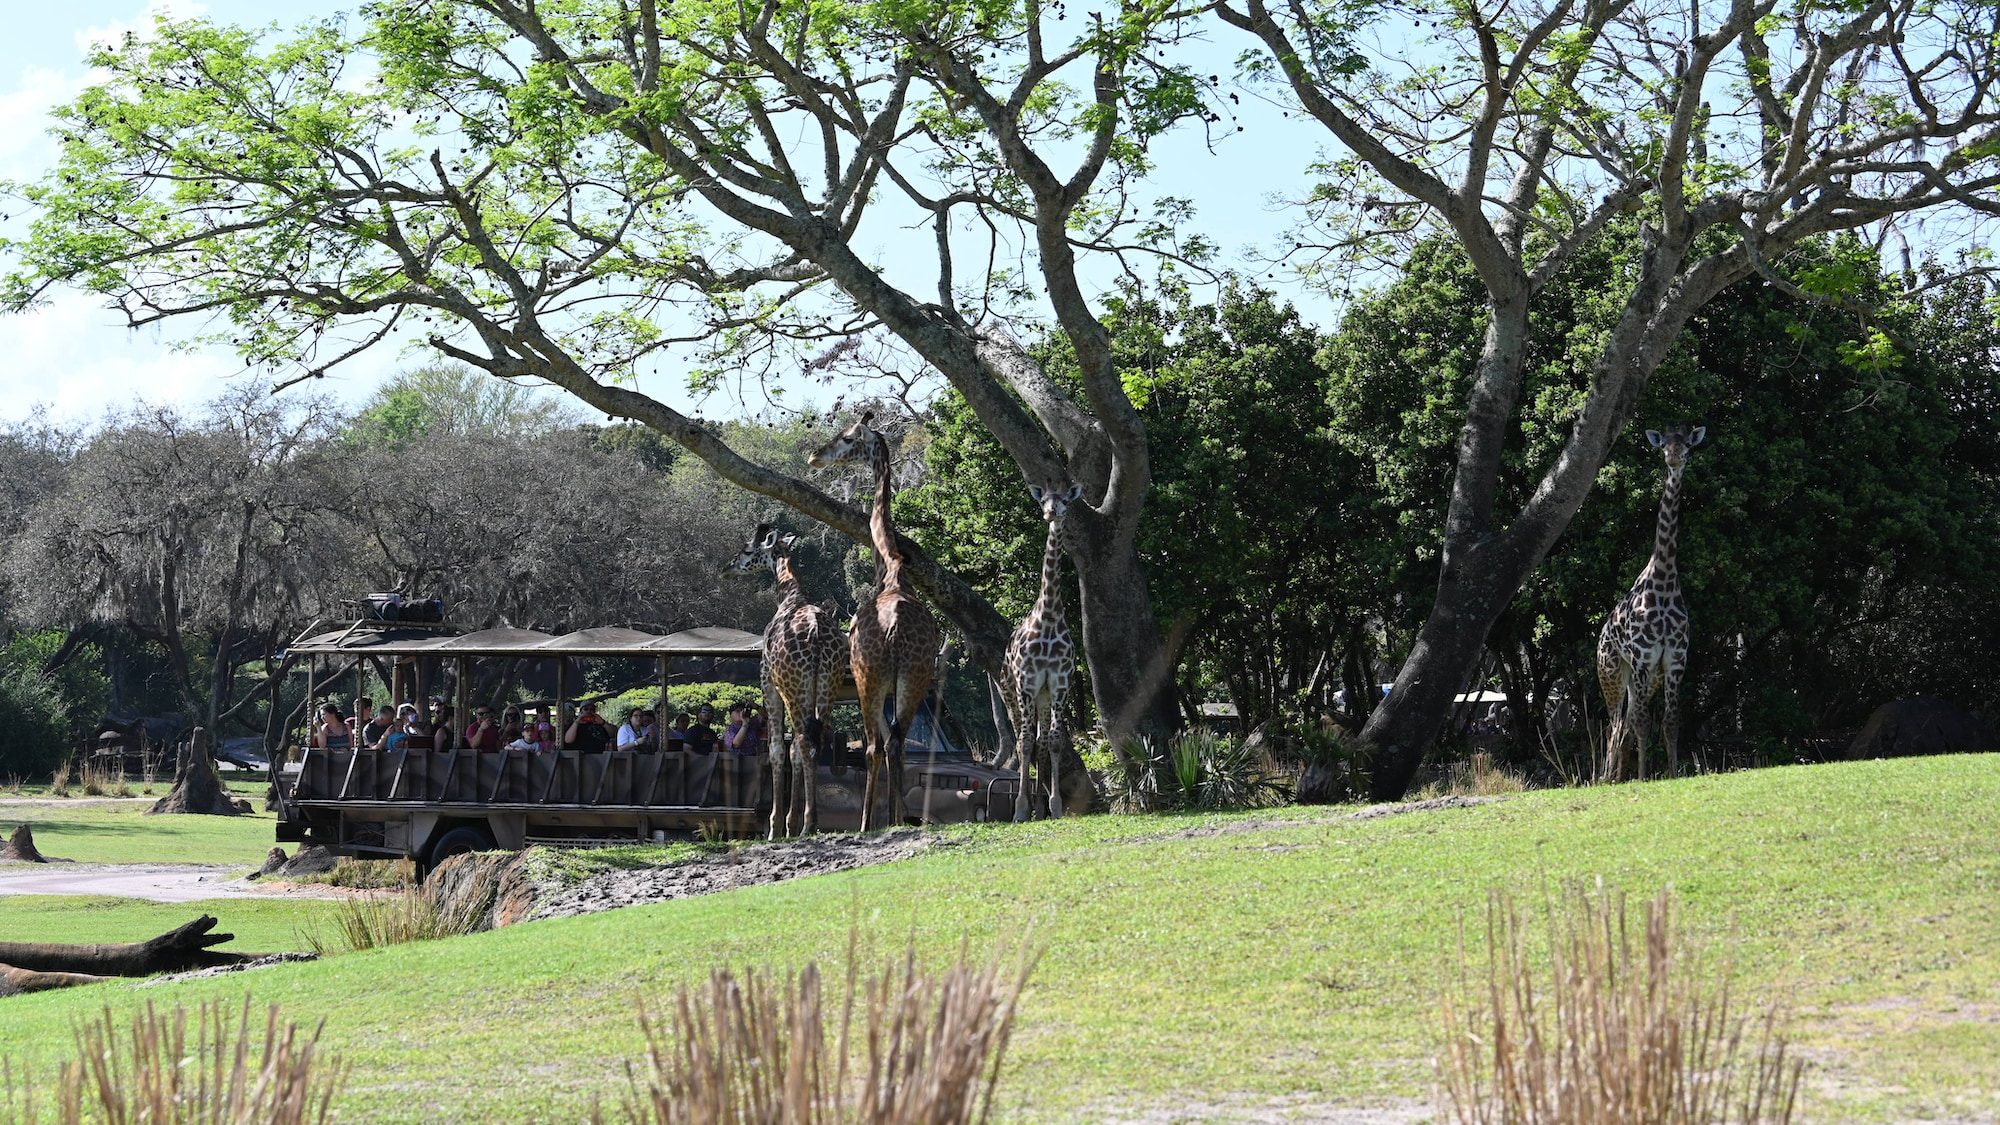 Guests observe giraffes on the savanna. (National Geographic/Gene Page)